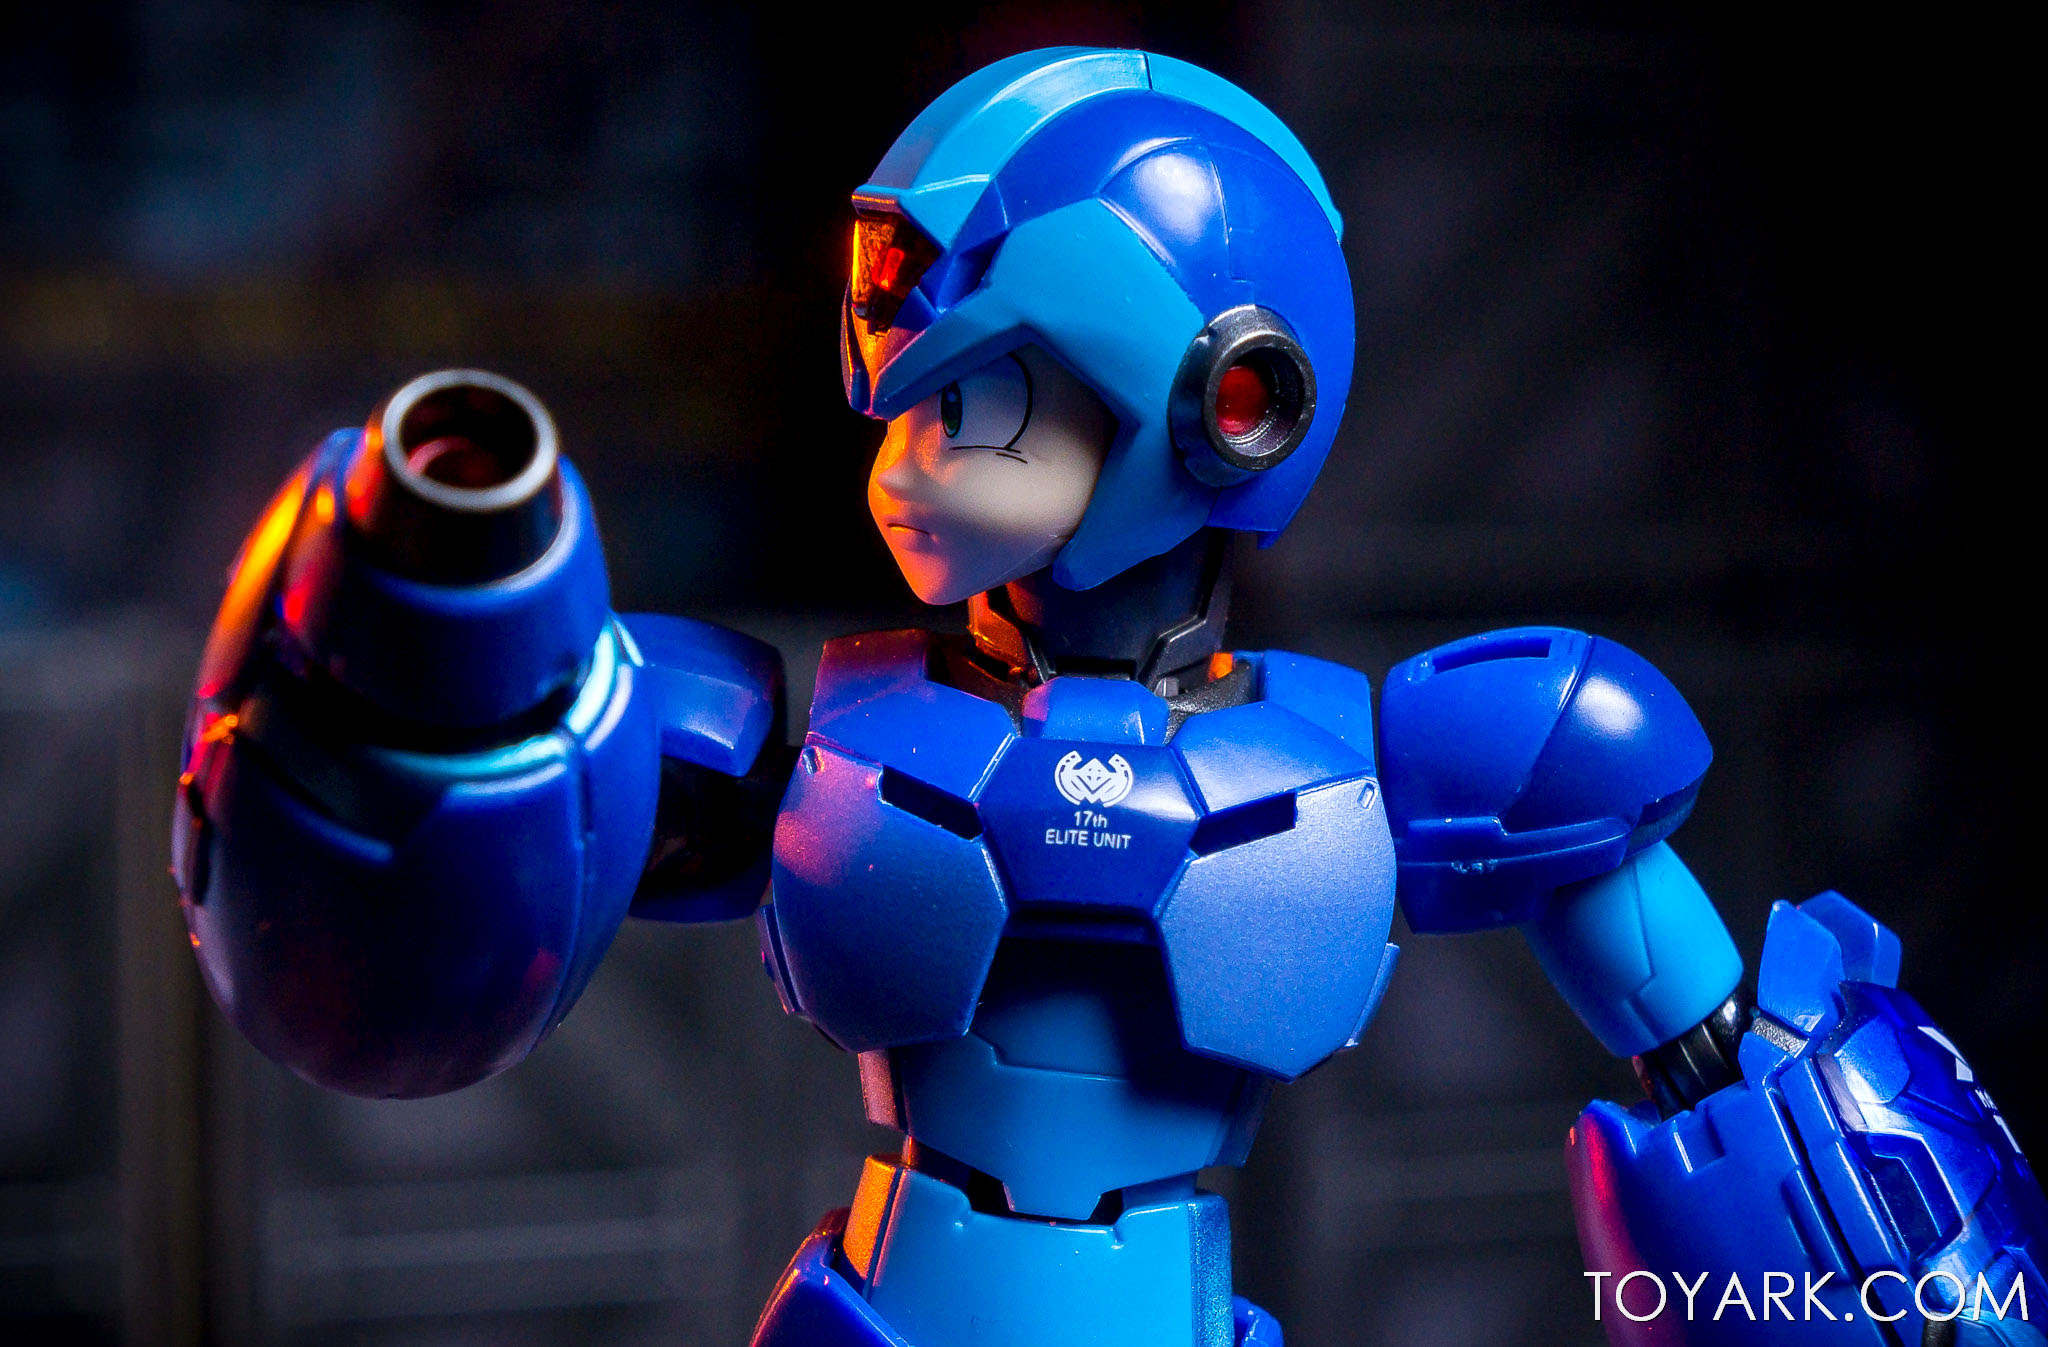 http://news.toyark.com/wp-content/uploads/sites/4/2018/01/Mega-Man-X-Giga-Armor-00059.jpg